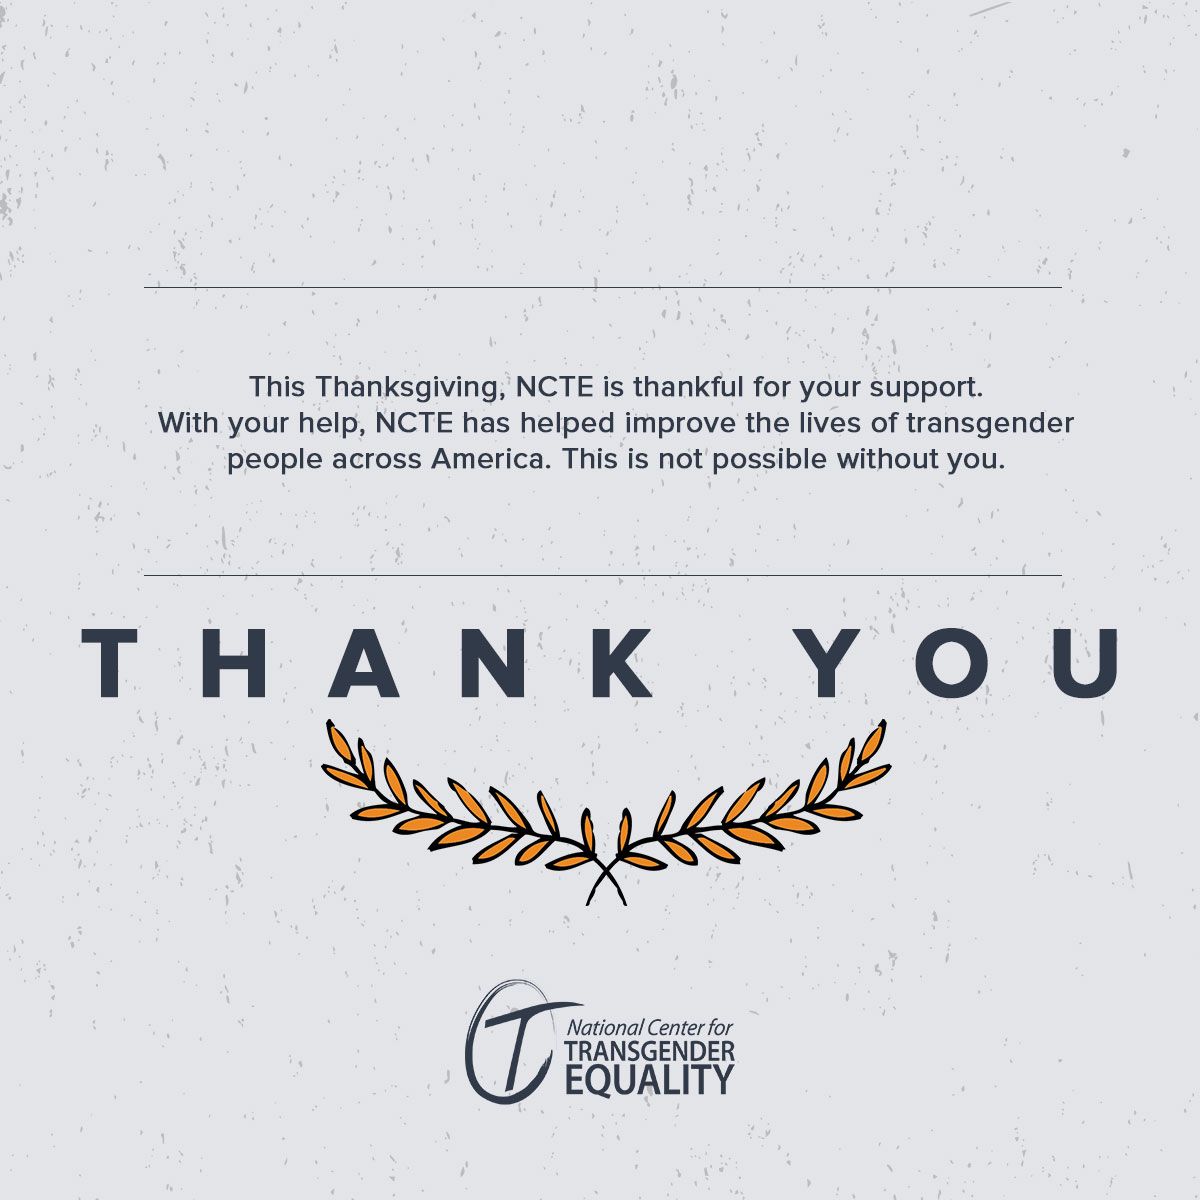 This Thanksgiving, NCTE is thankful for your support.